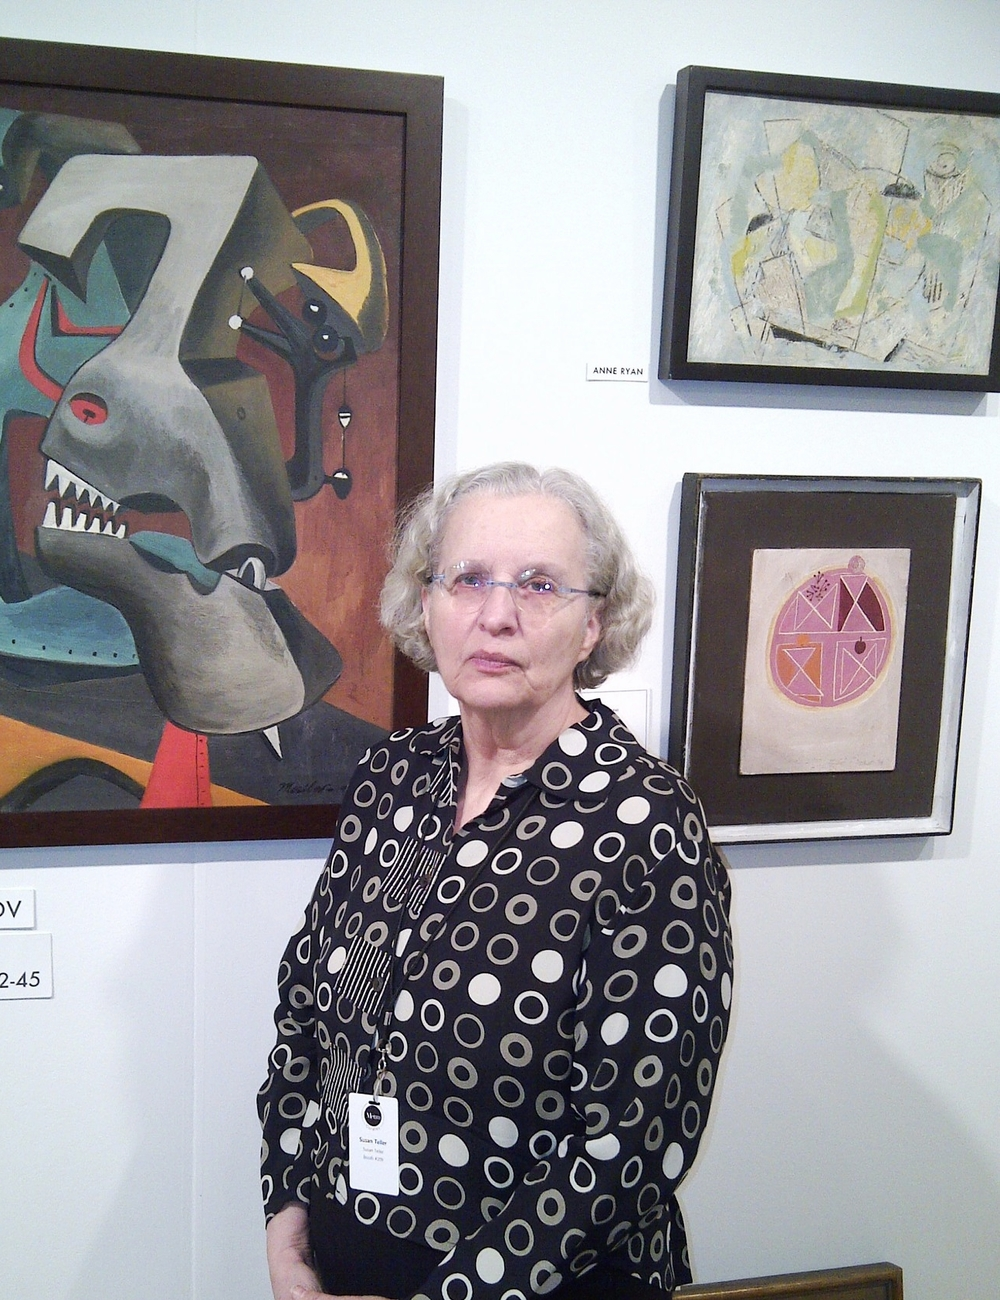 Susan Teller, Director of Susan Teller Gallery